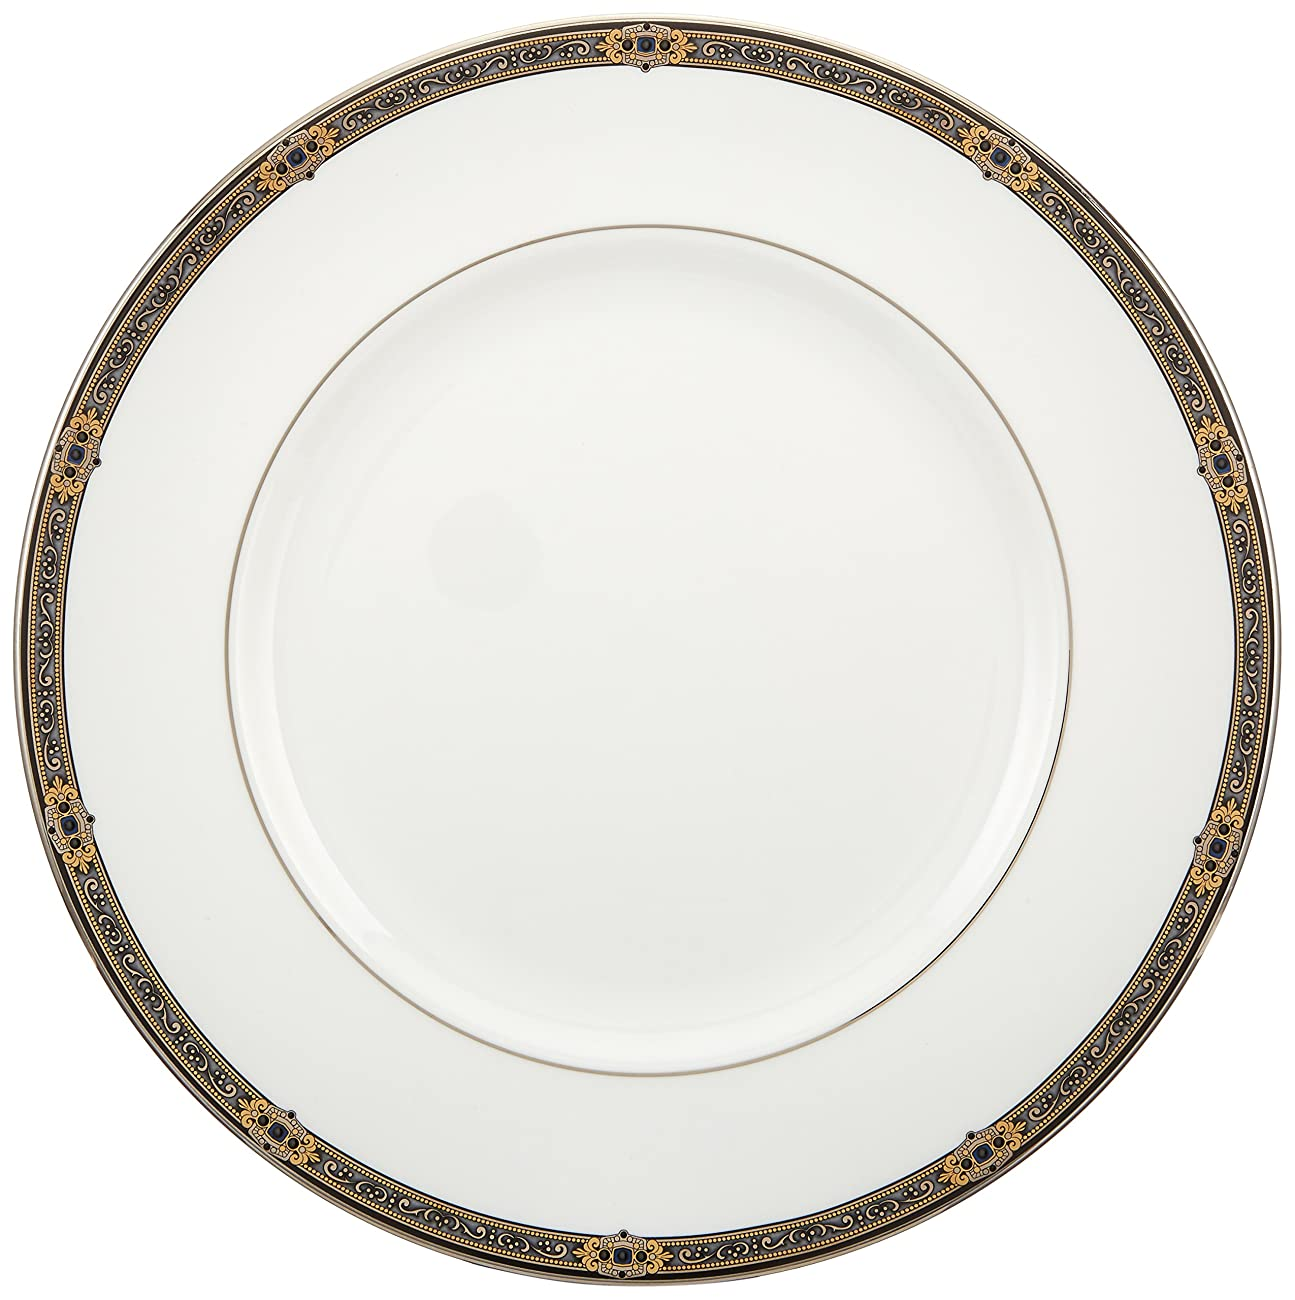 Lenox Vintage Jewel Platinum-Banded Bone China 5-Piece Place Setting, Service for 1 2